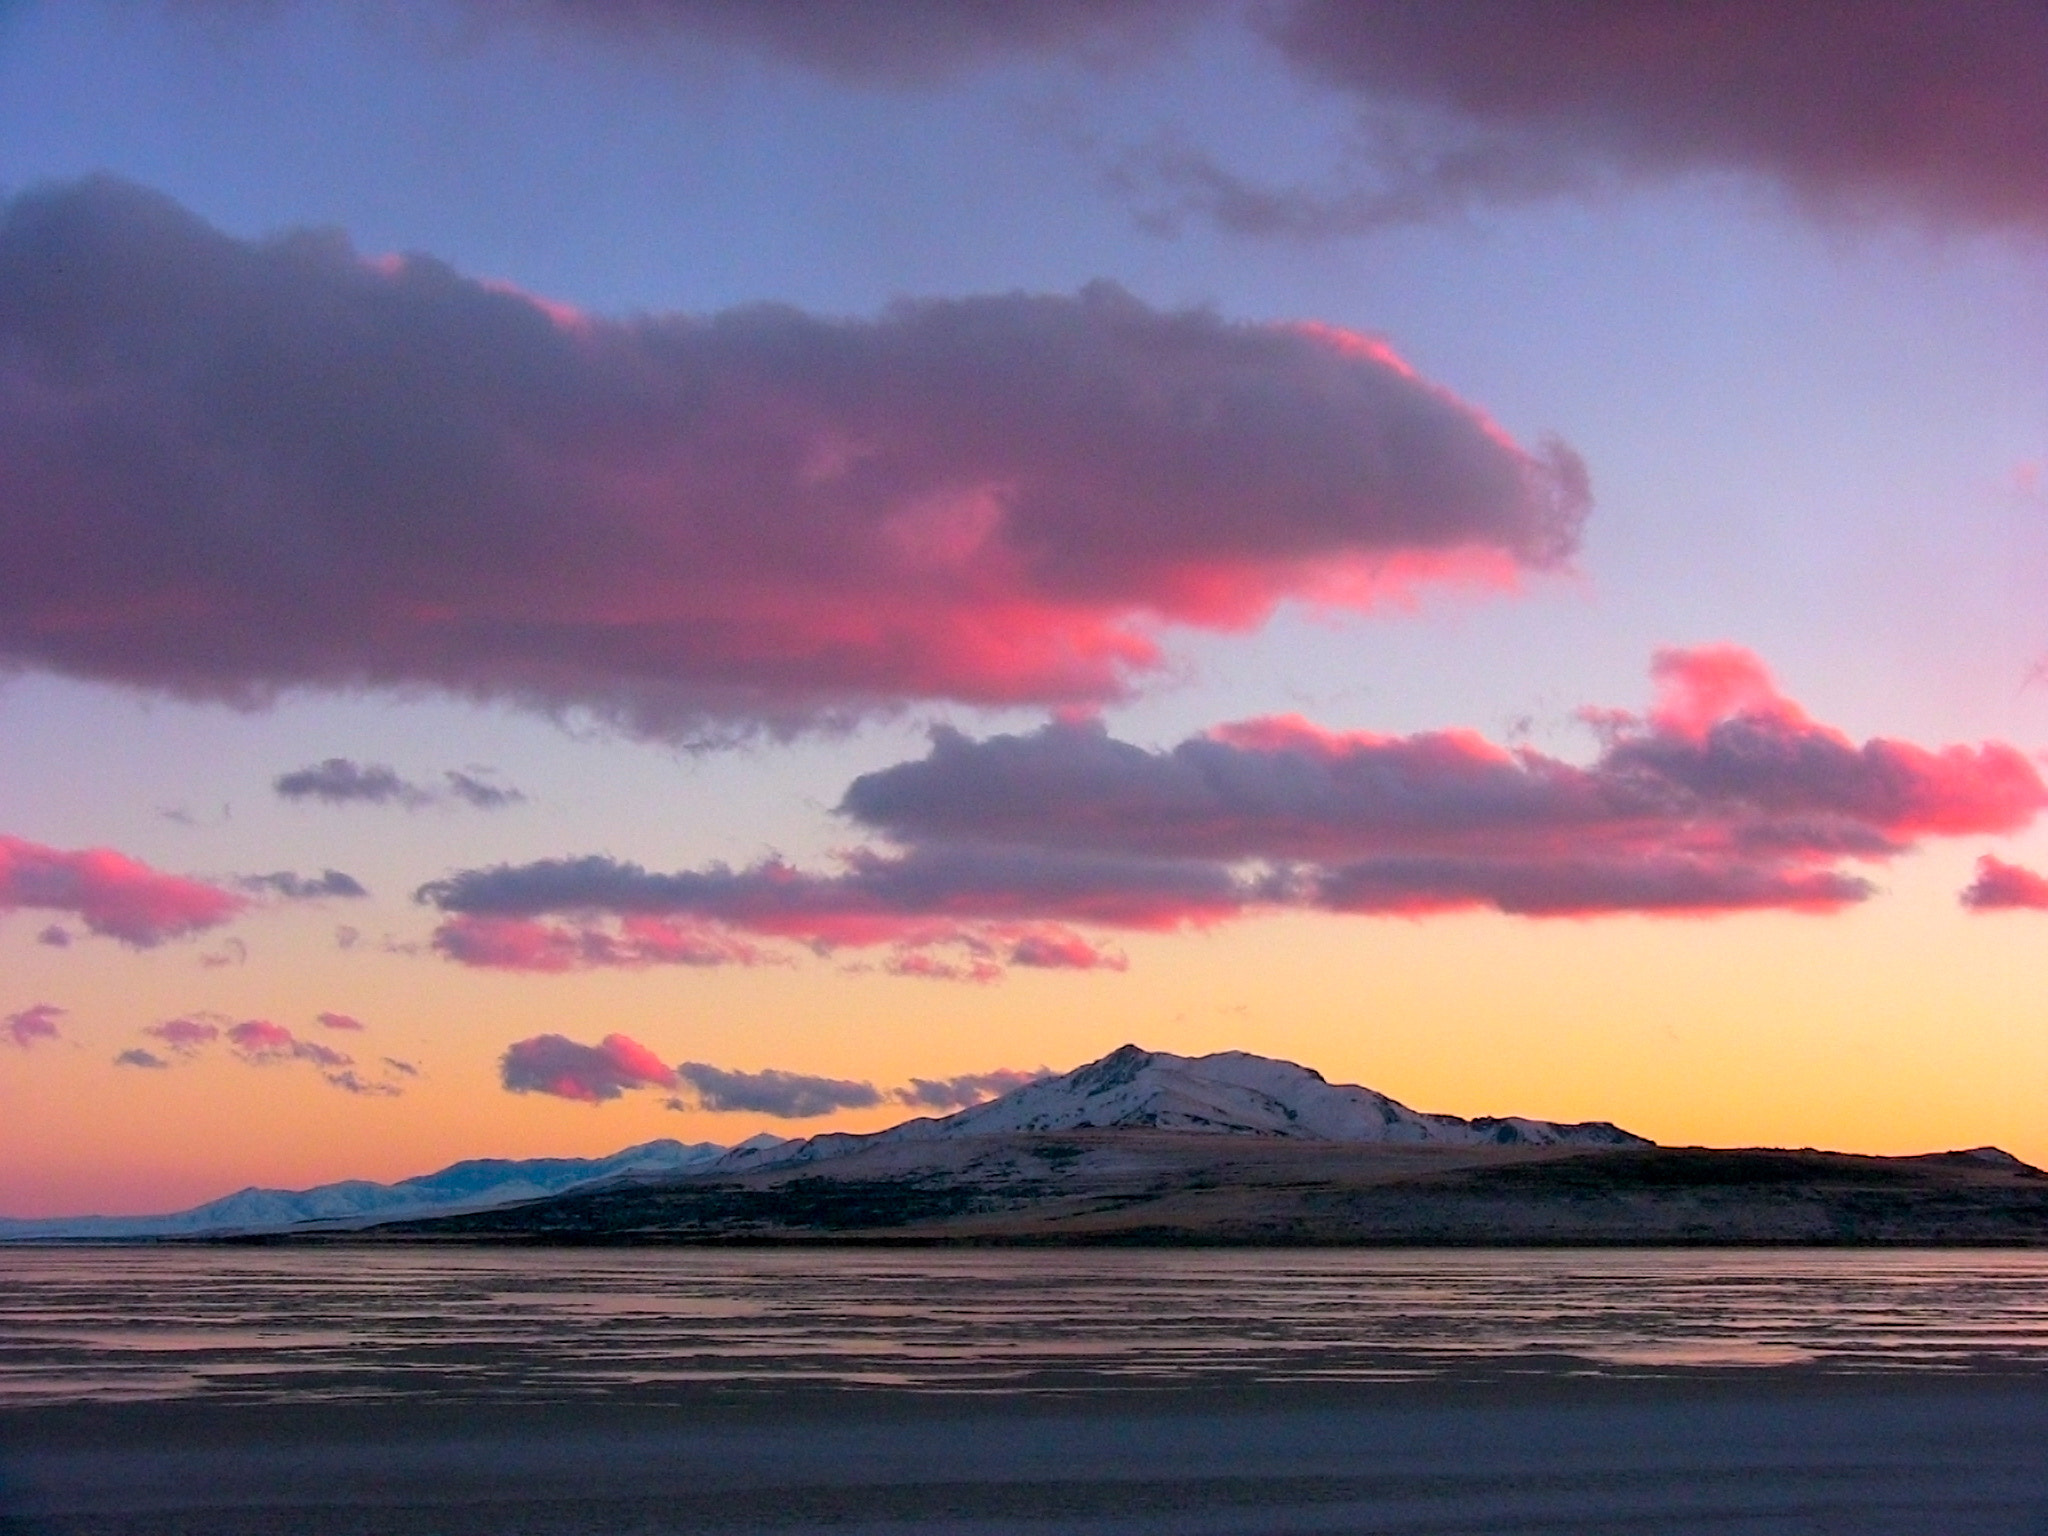 Photograph Antelope Island Sunset by Christian Madsen on 500px